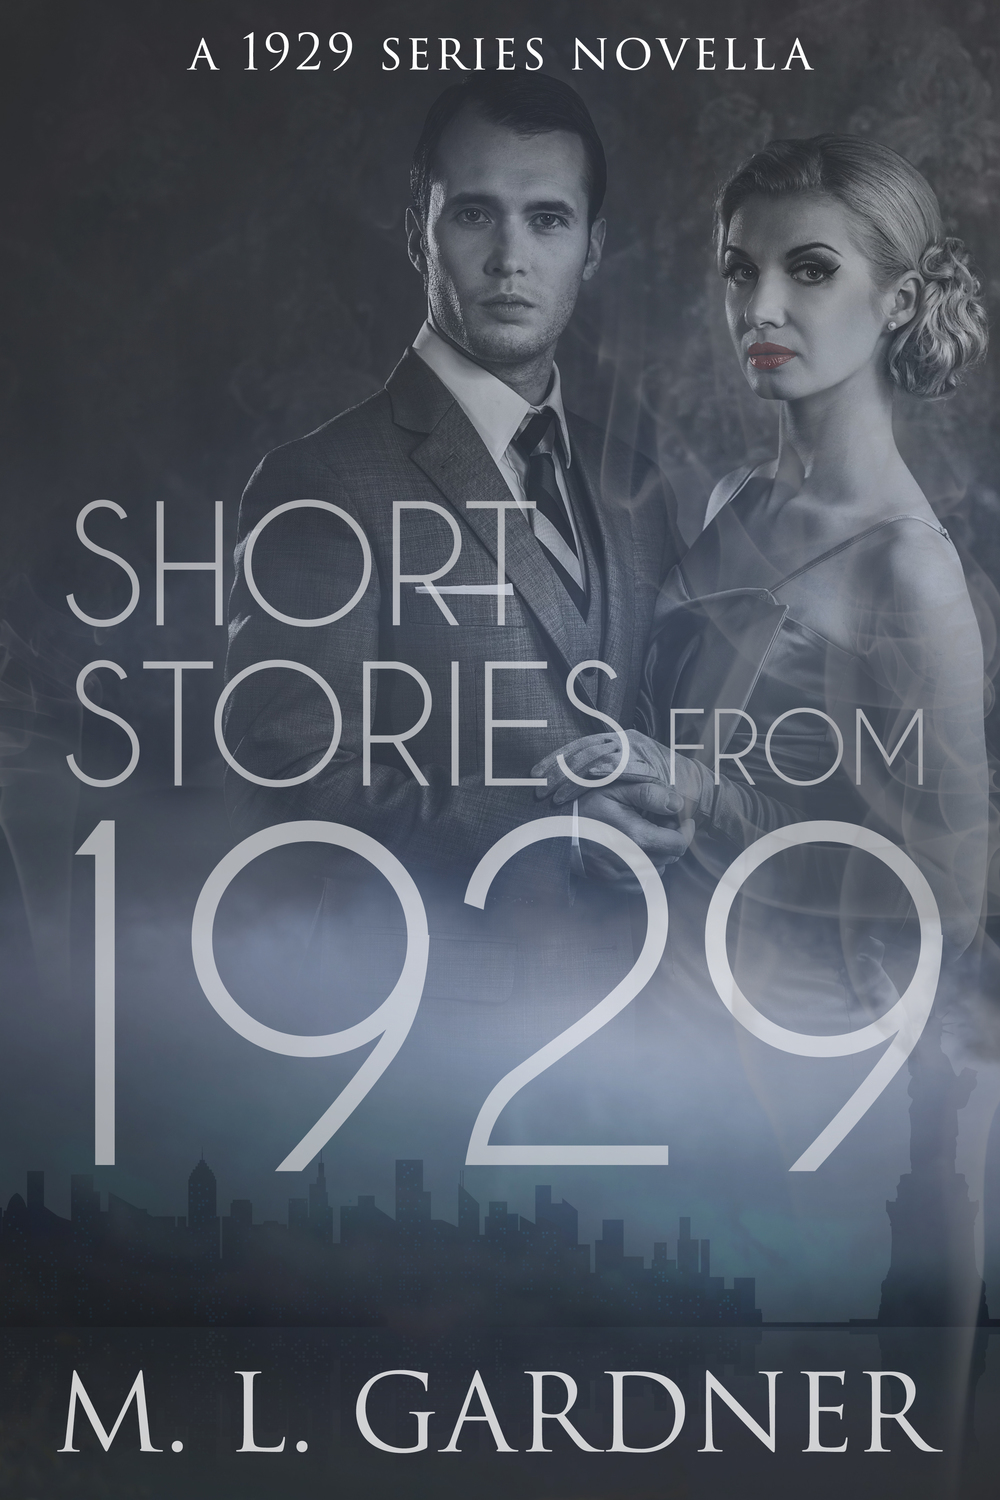 Short Stories from 1929 by M. L. Gardner